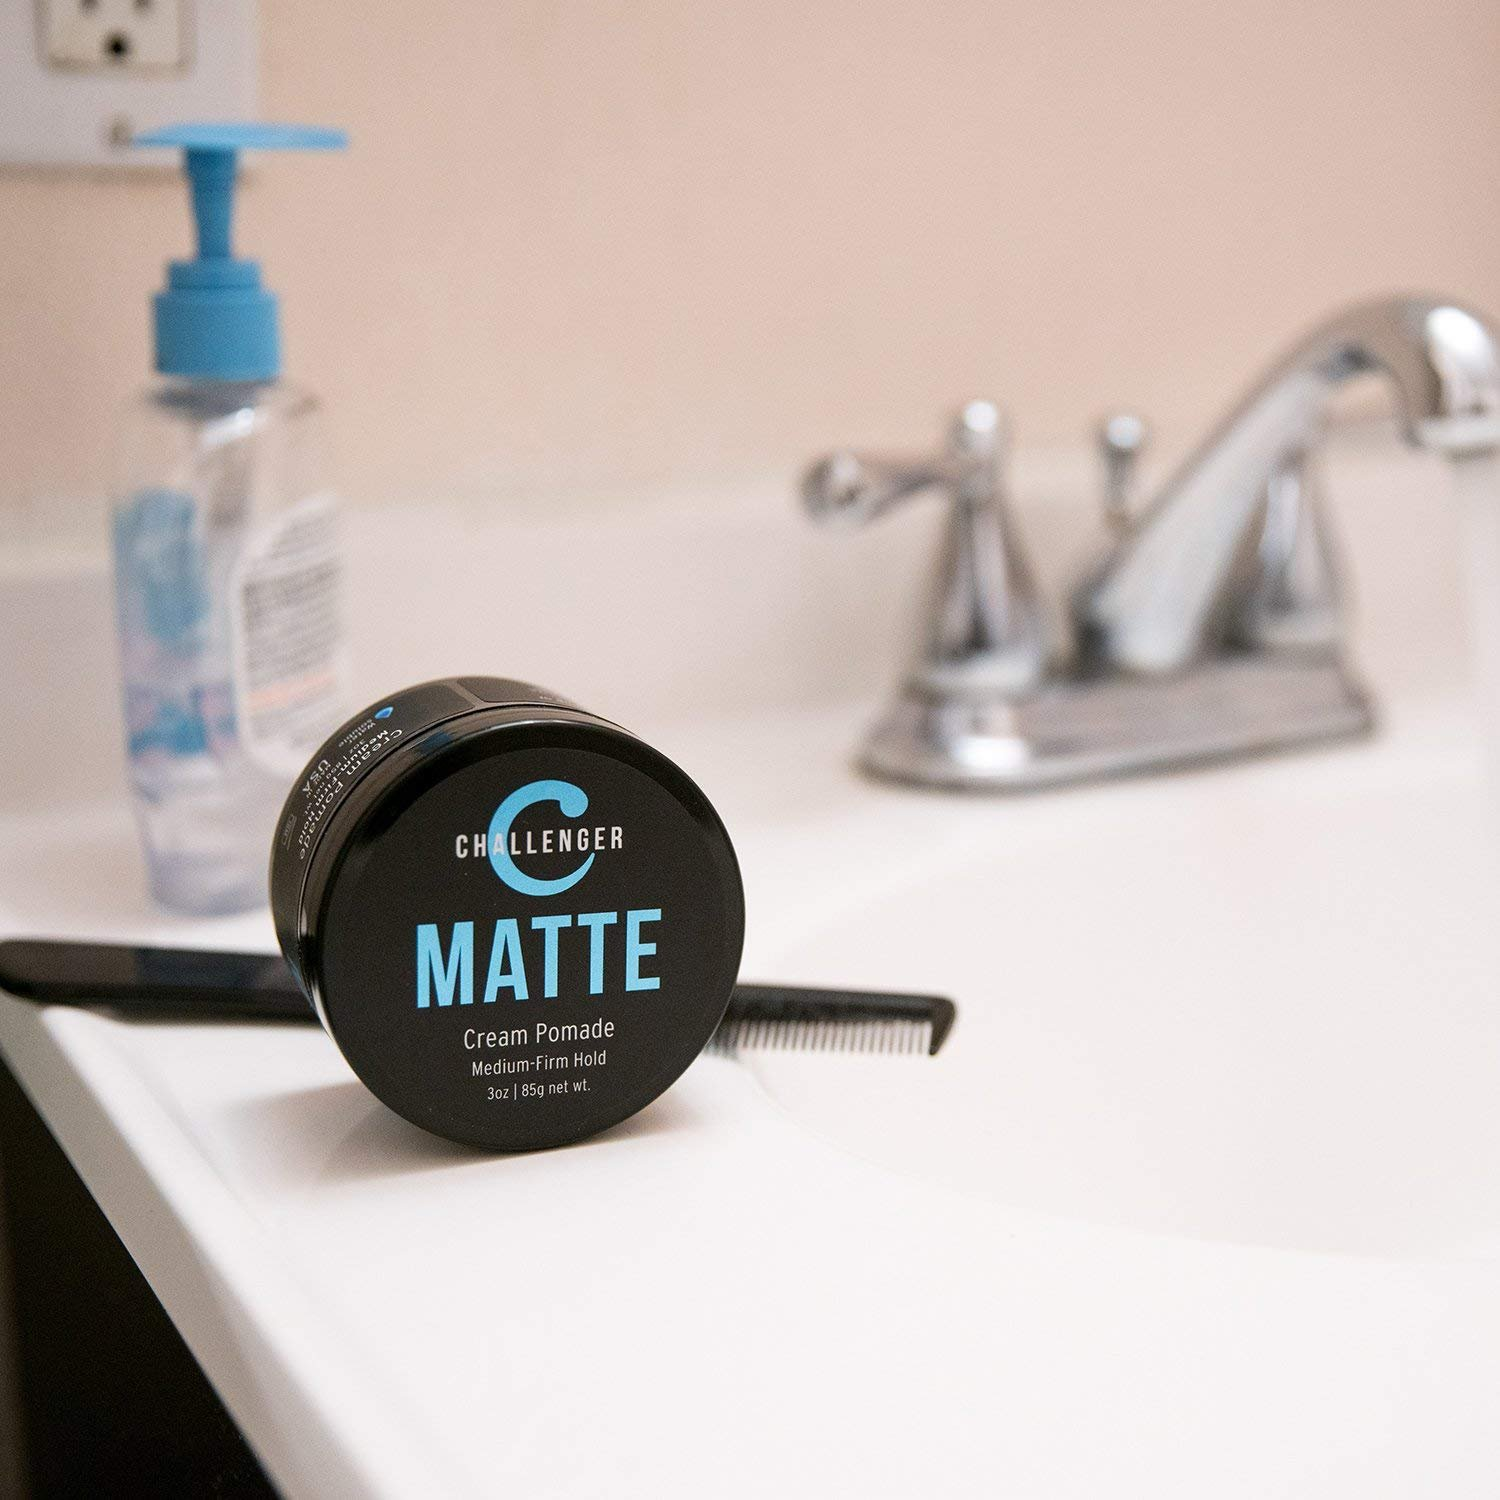 Matte Cream Pomade - Challenger 3oz - Medium Firm Hold - Water Based, Clean & Subtle Scent, Travel Friendly. Men's Hair Wax, Fiber, Clay, Paste, Styling Cream All In One by Challenger (Image #2)